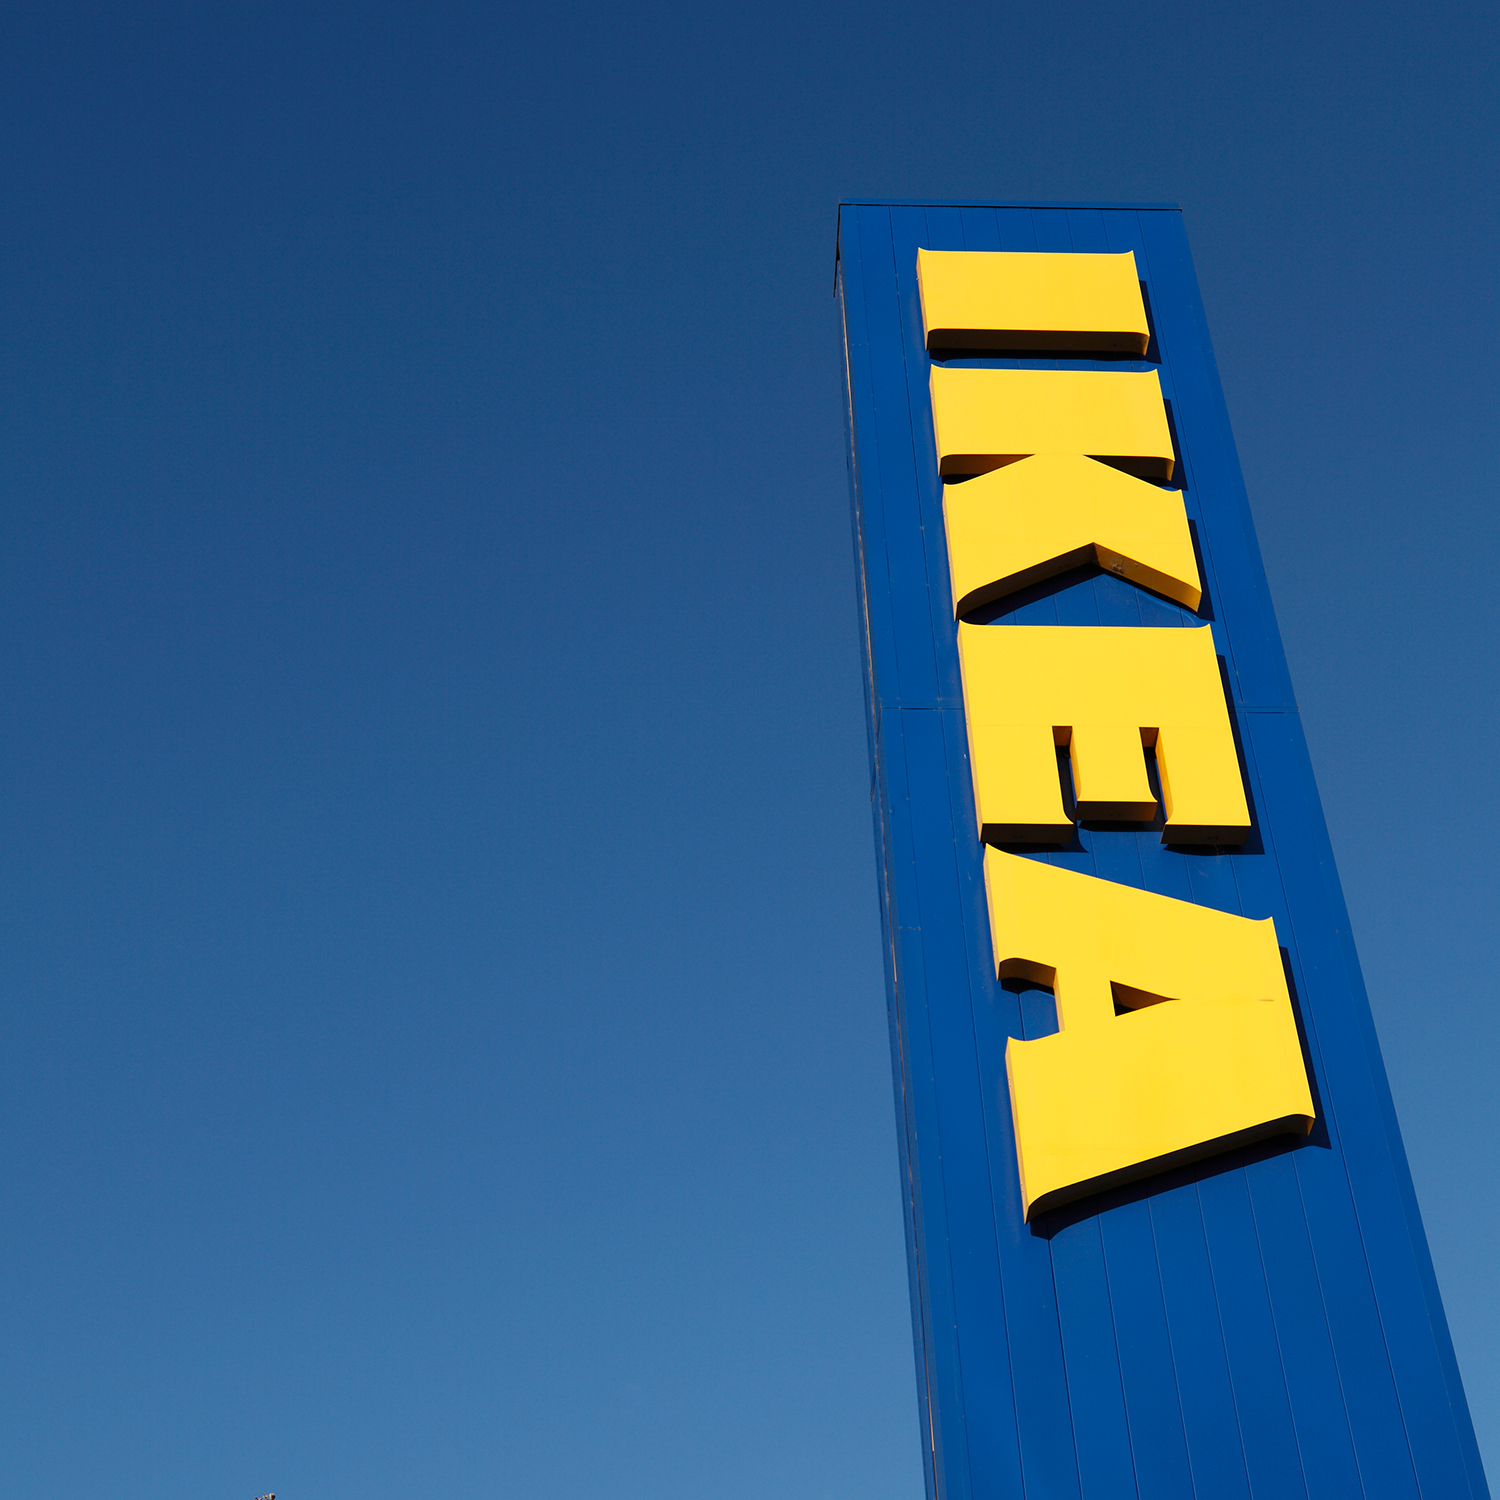 Ikea Sign in Blue Sign